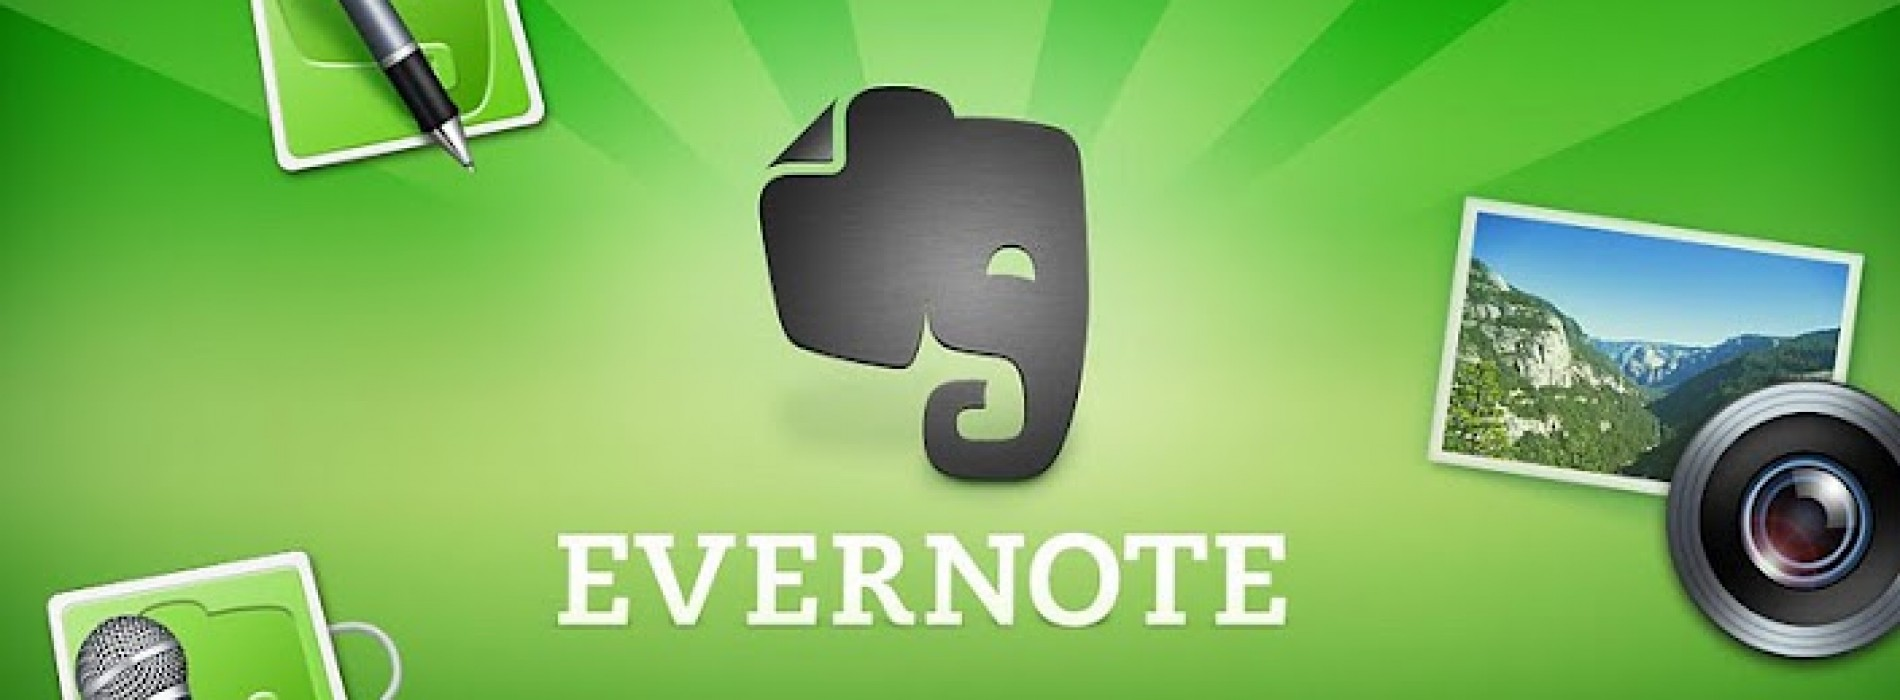 Evernote optimizes app with Android 4.1-specific features